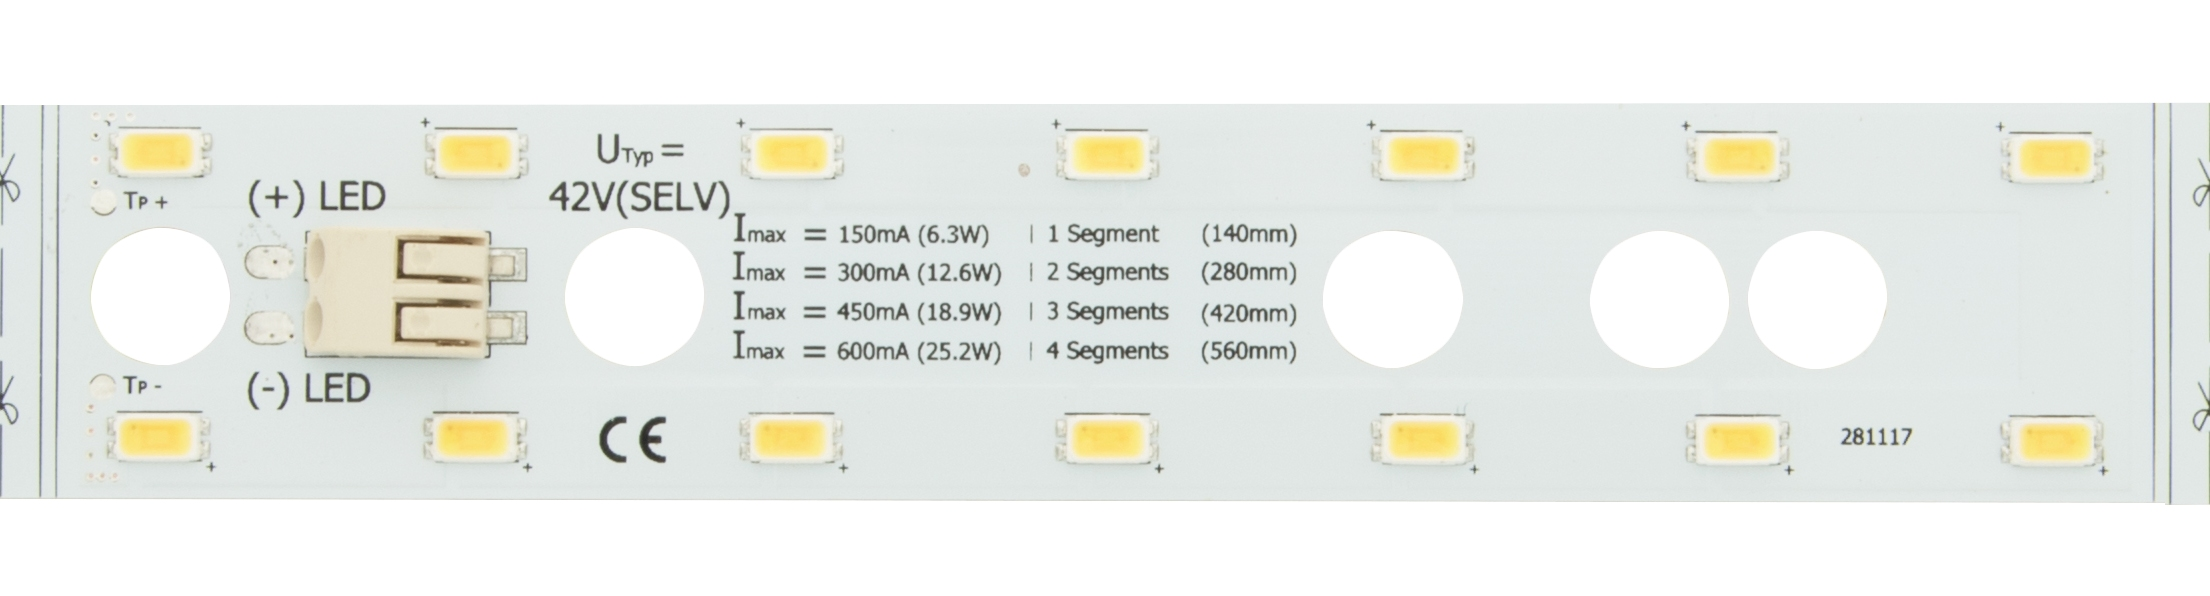 1 Stk LED Platinen Modul 25 NW (Neutral Weiss) - IP20, CRI/RA 80+ LIPM002840